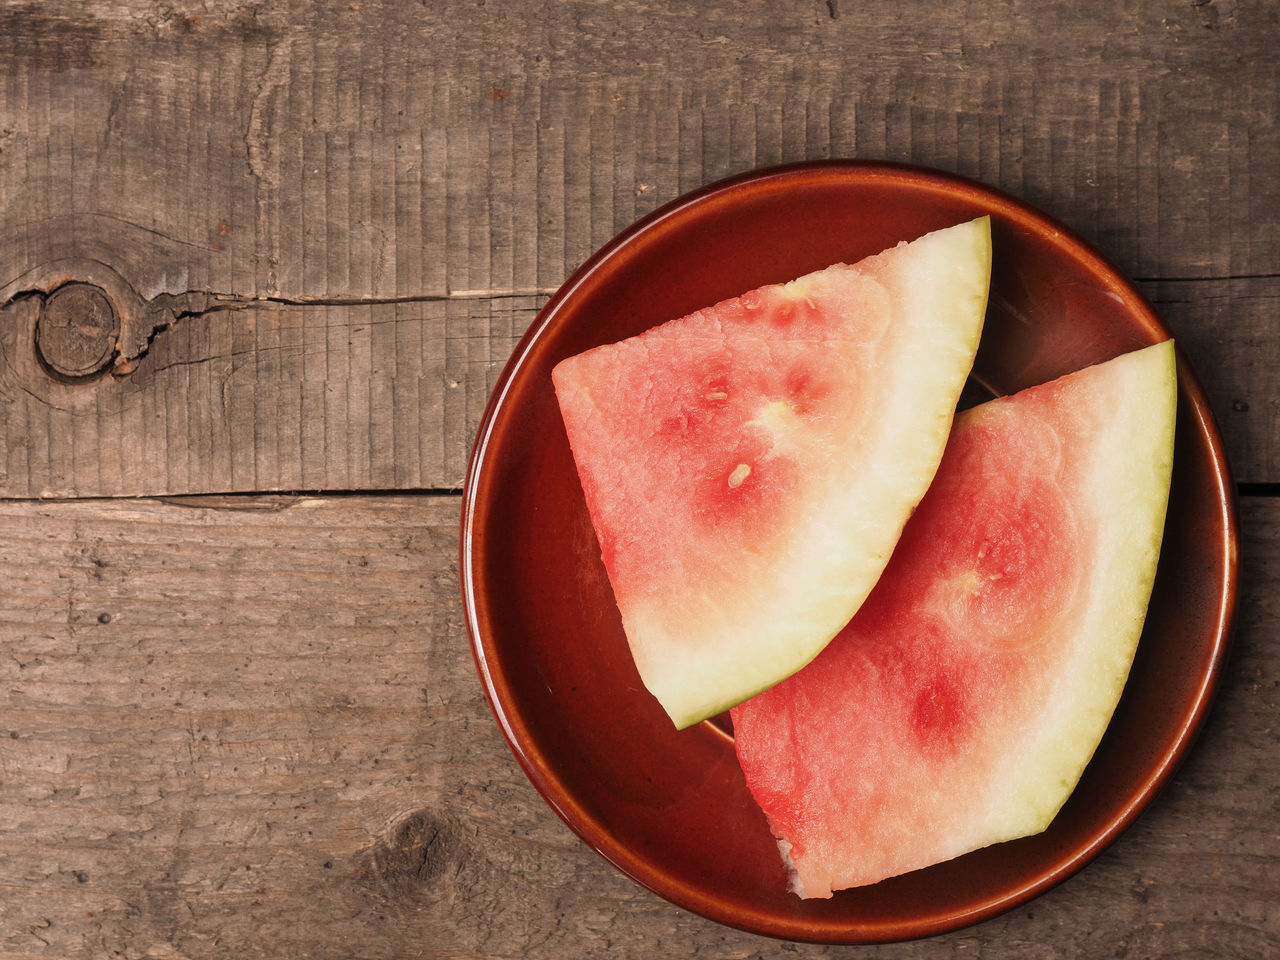 Water melon on a plate Food Fresh Freshness Fruits Healthy Organic Plate Rustic Style Top View View From Above Vitamin Water Melon Wooden Table